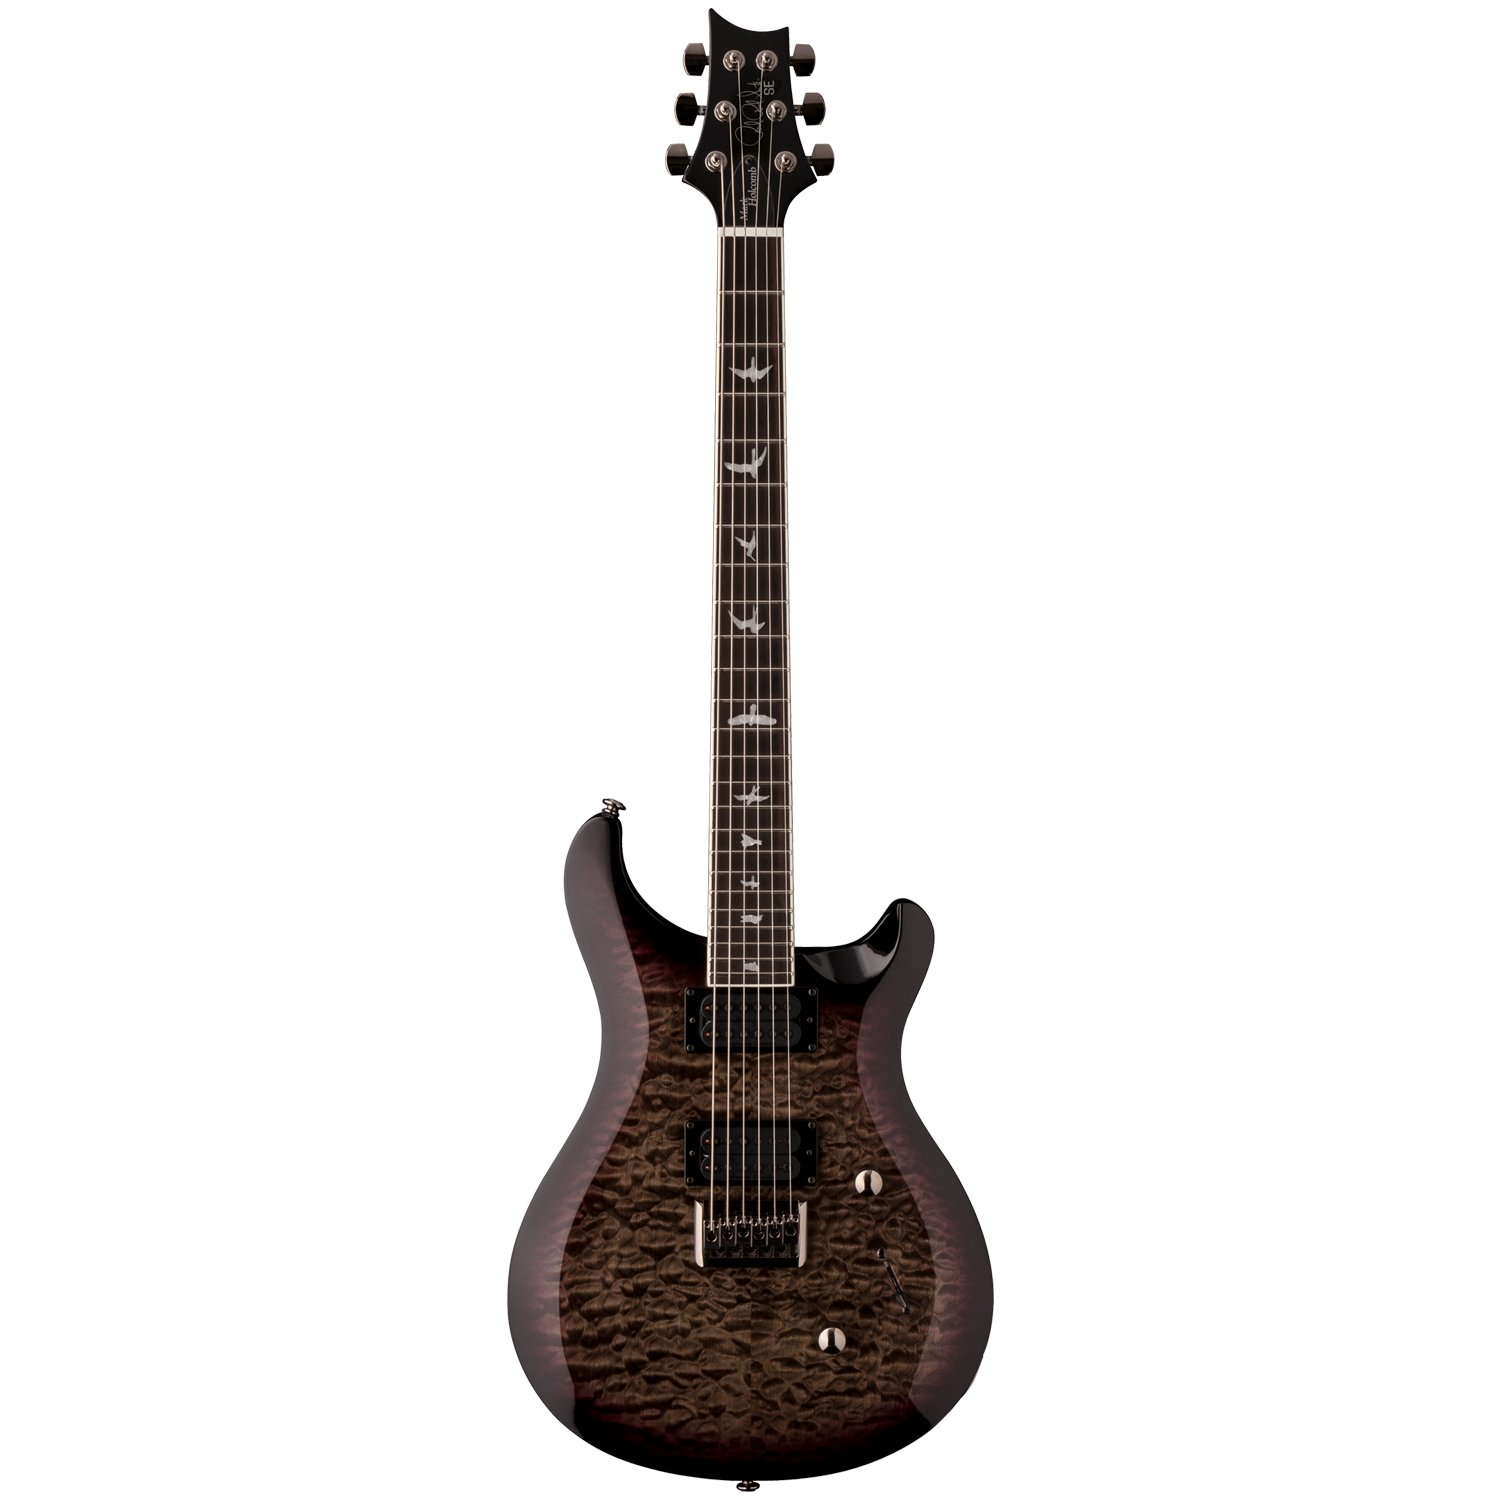 Amazon Paul Reed Smith Guitars Mhhb2 Kit 2 Electric Guitar Pack